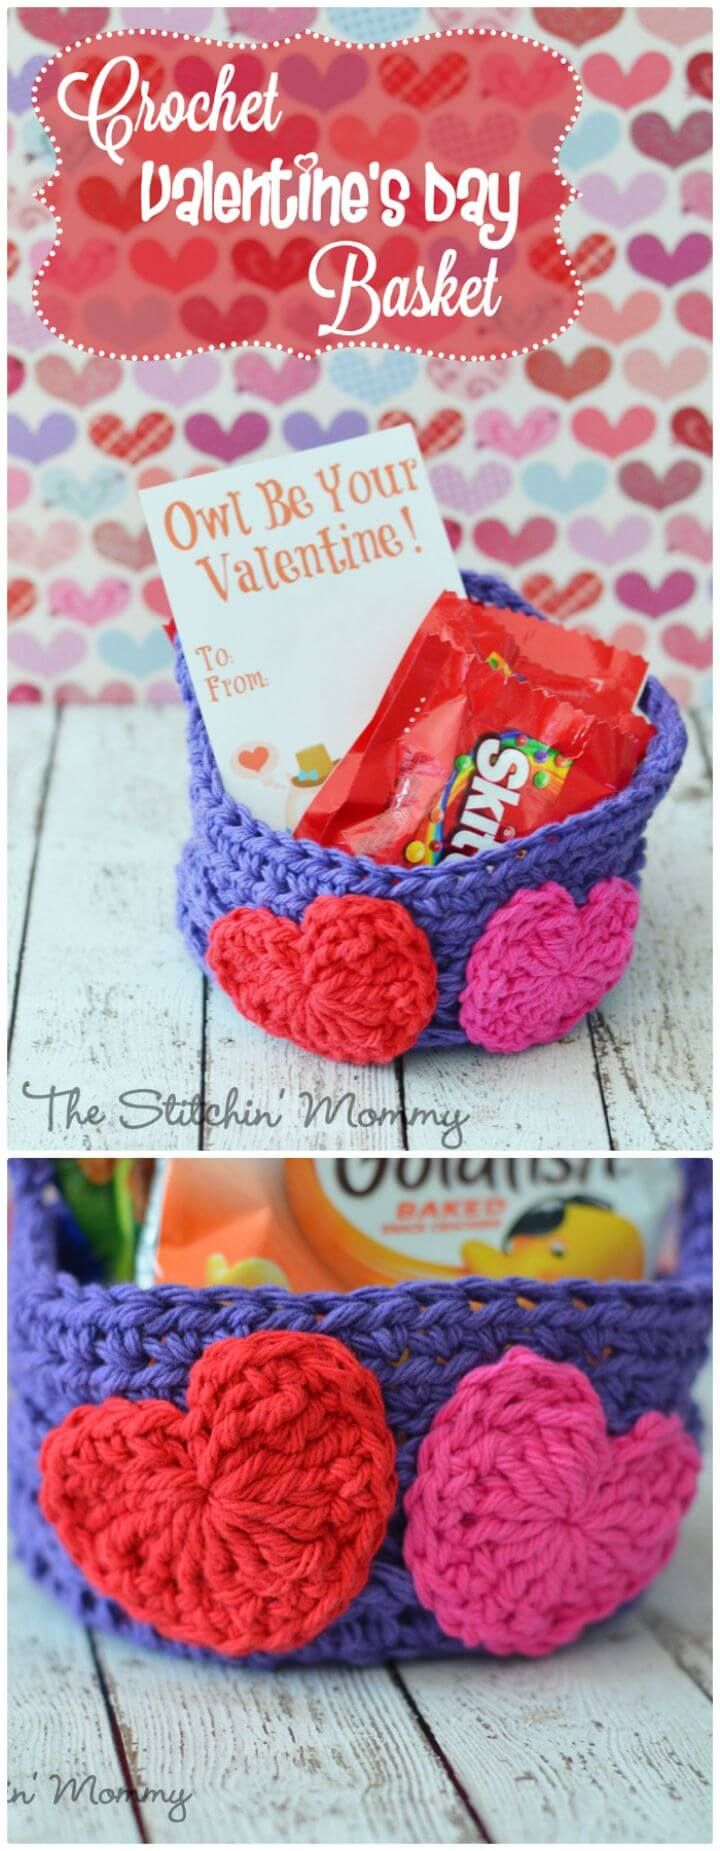 94 Free Crochet Patterns For Valentines Day Gifts Free Crochet